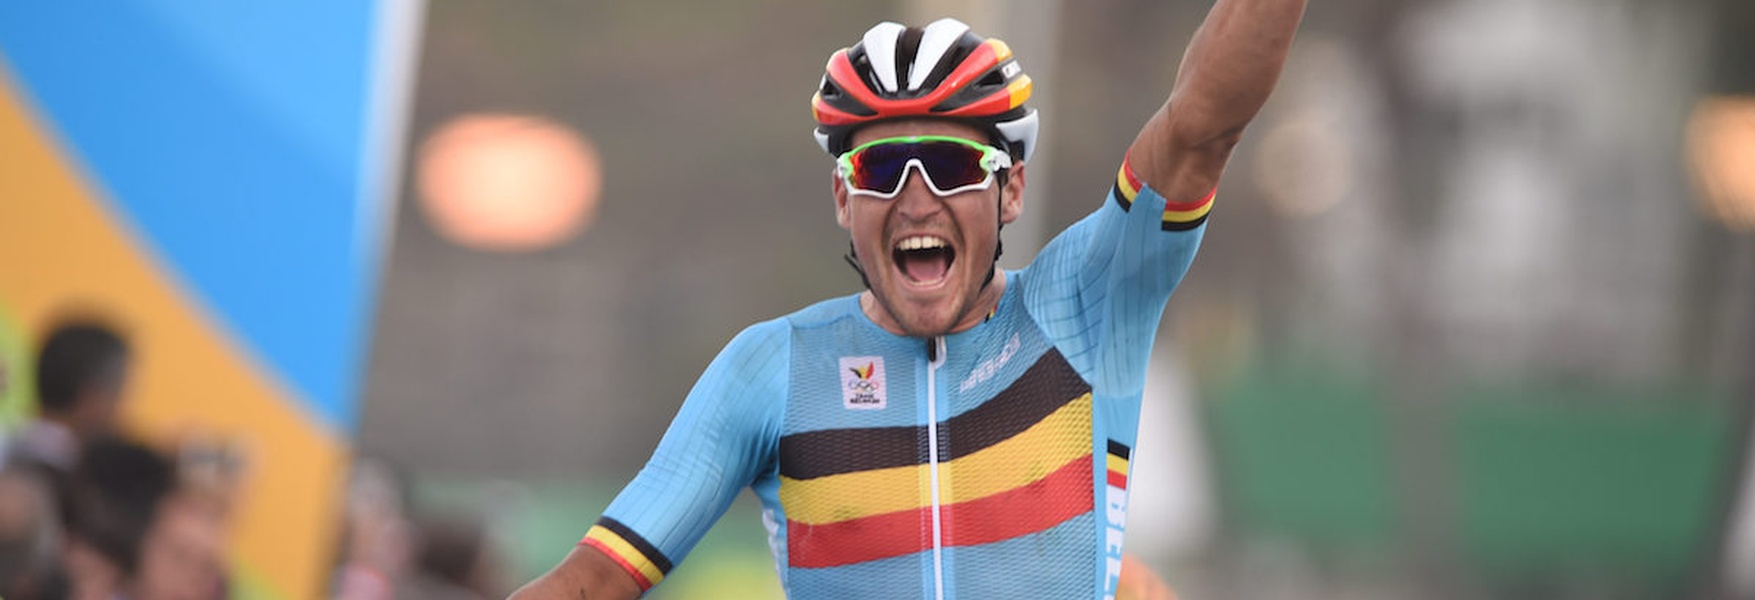 Olympic-Games-RR-Greg-Van-Avermaet-photo-Sirotti.jpg